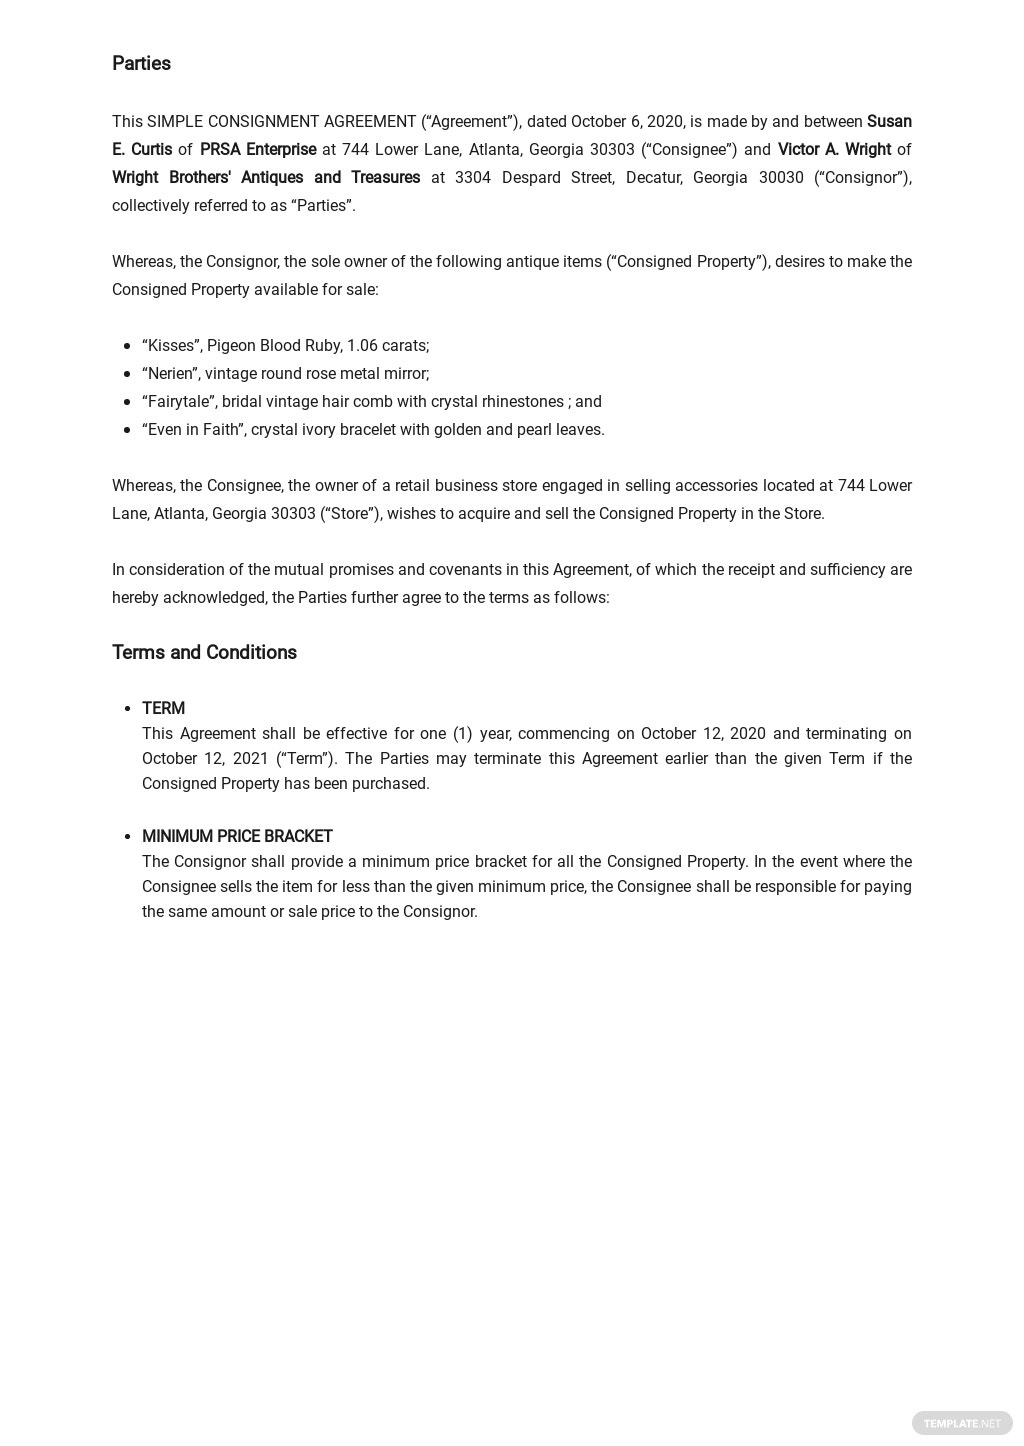 Simple Consignment Agreement Template 1.jpe